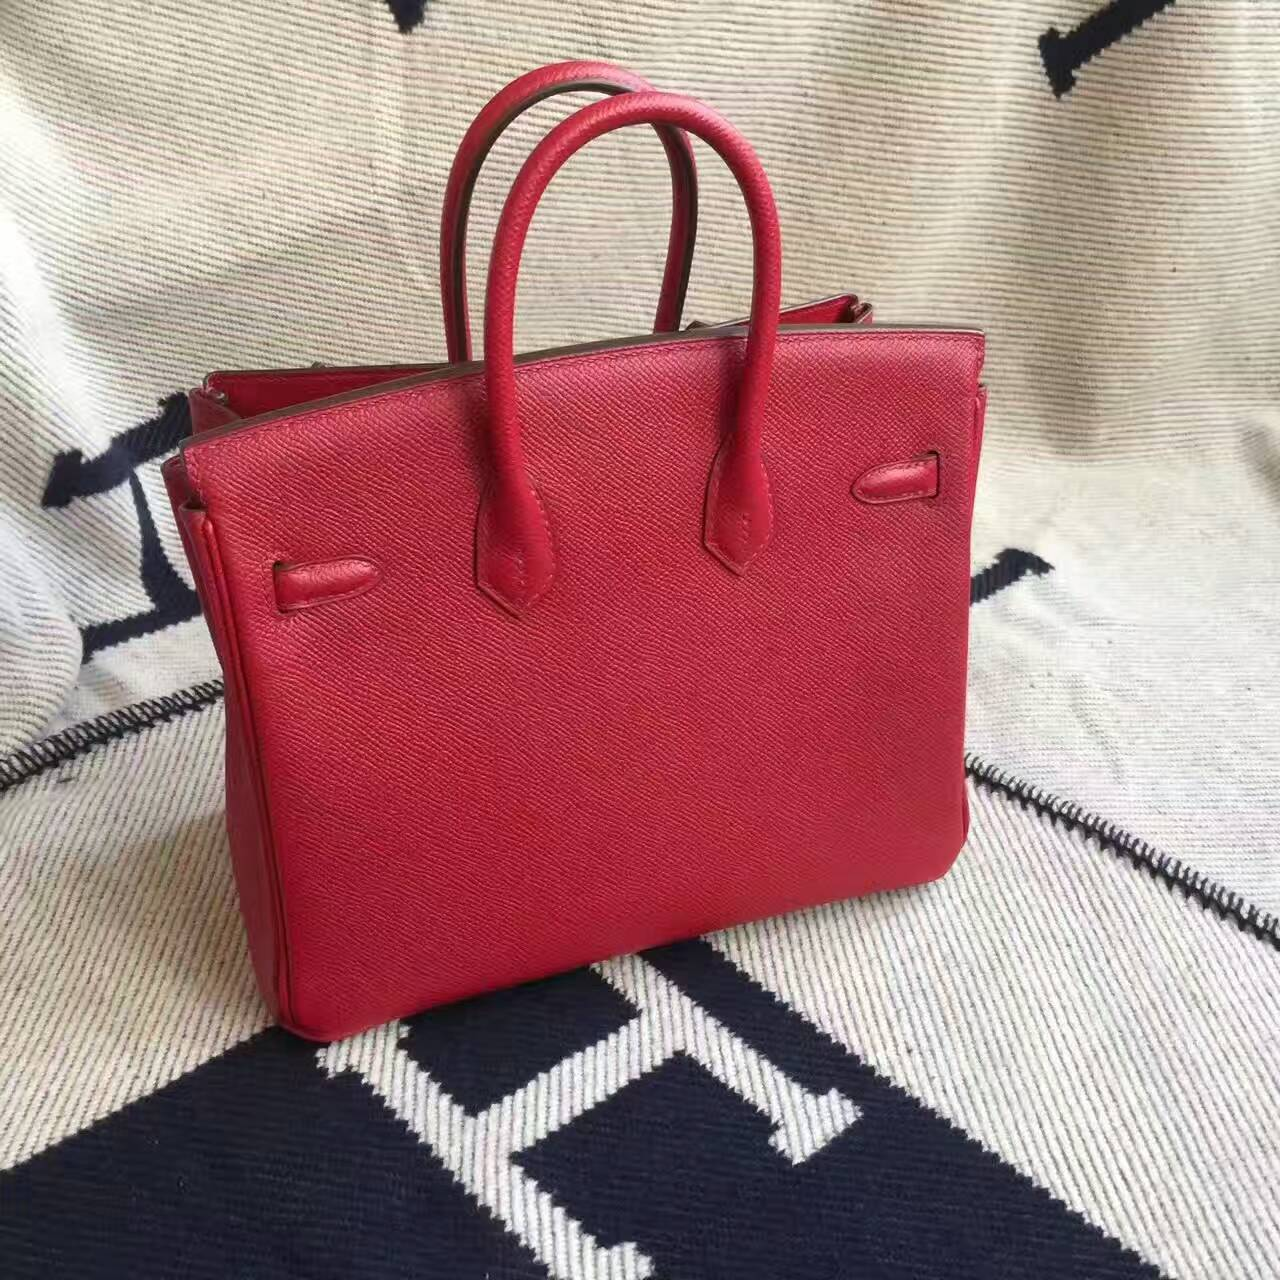 Hand Stitching Hermes Epsom Calfskin Leather Birkin25cm in K1 Rouge Grenade